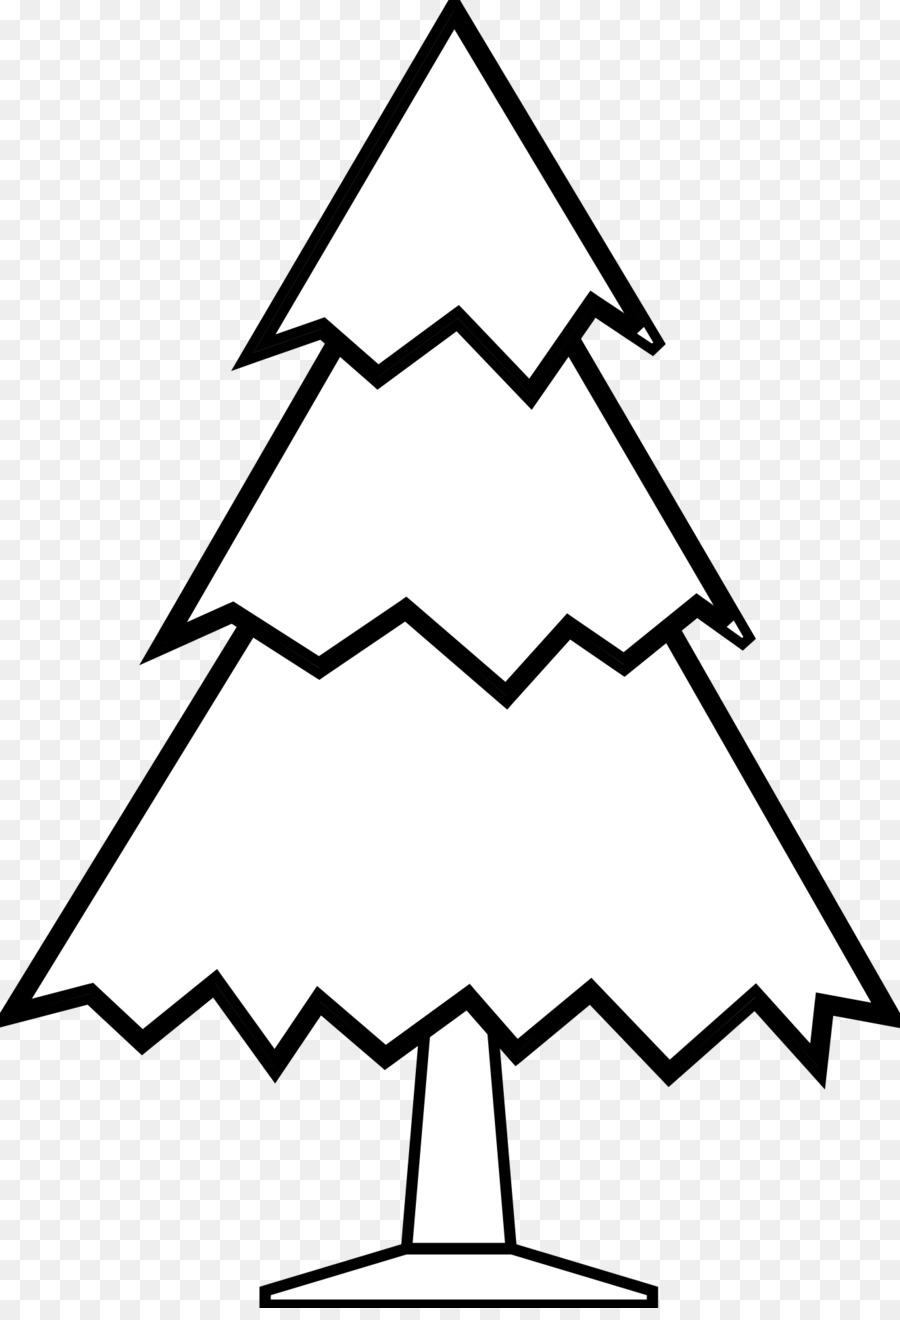 Christmas Tree Clipart Black And White.Christmas Tree Black And White Clip Art Black And White